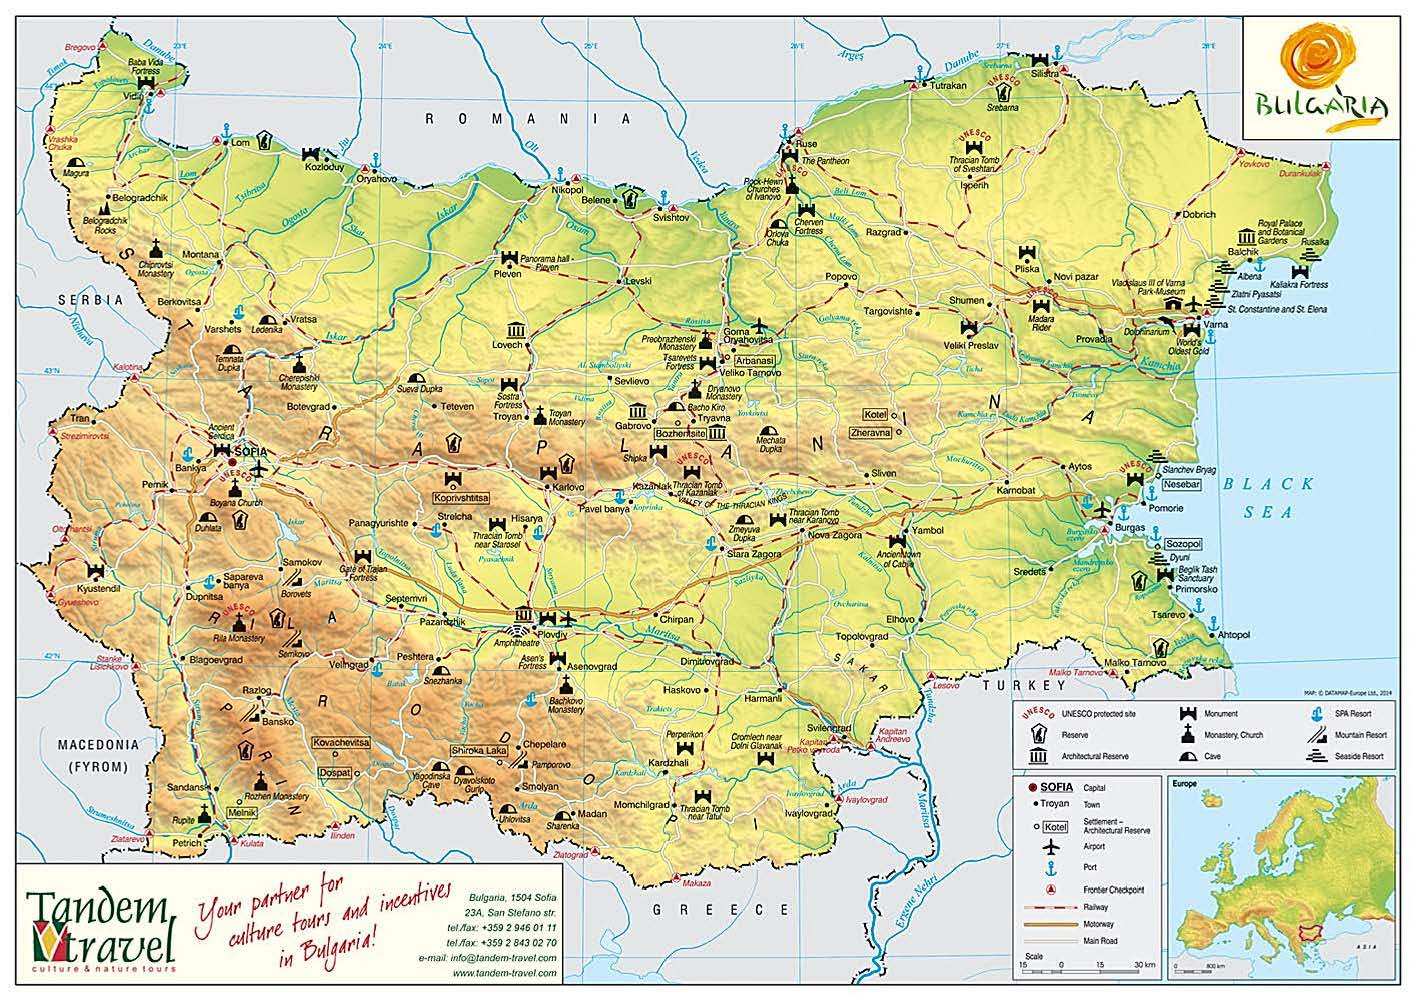 Map of Bulgaria Tandem Travel